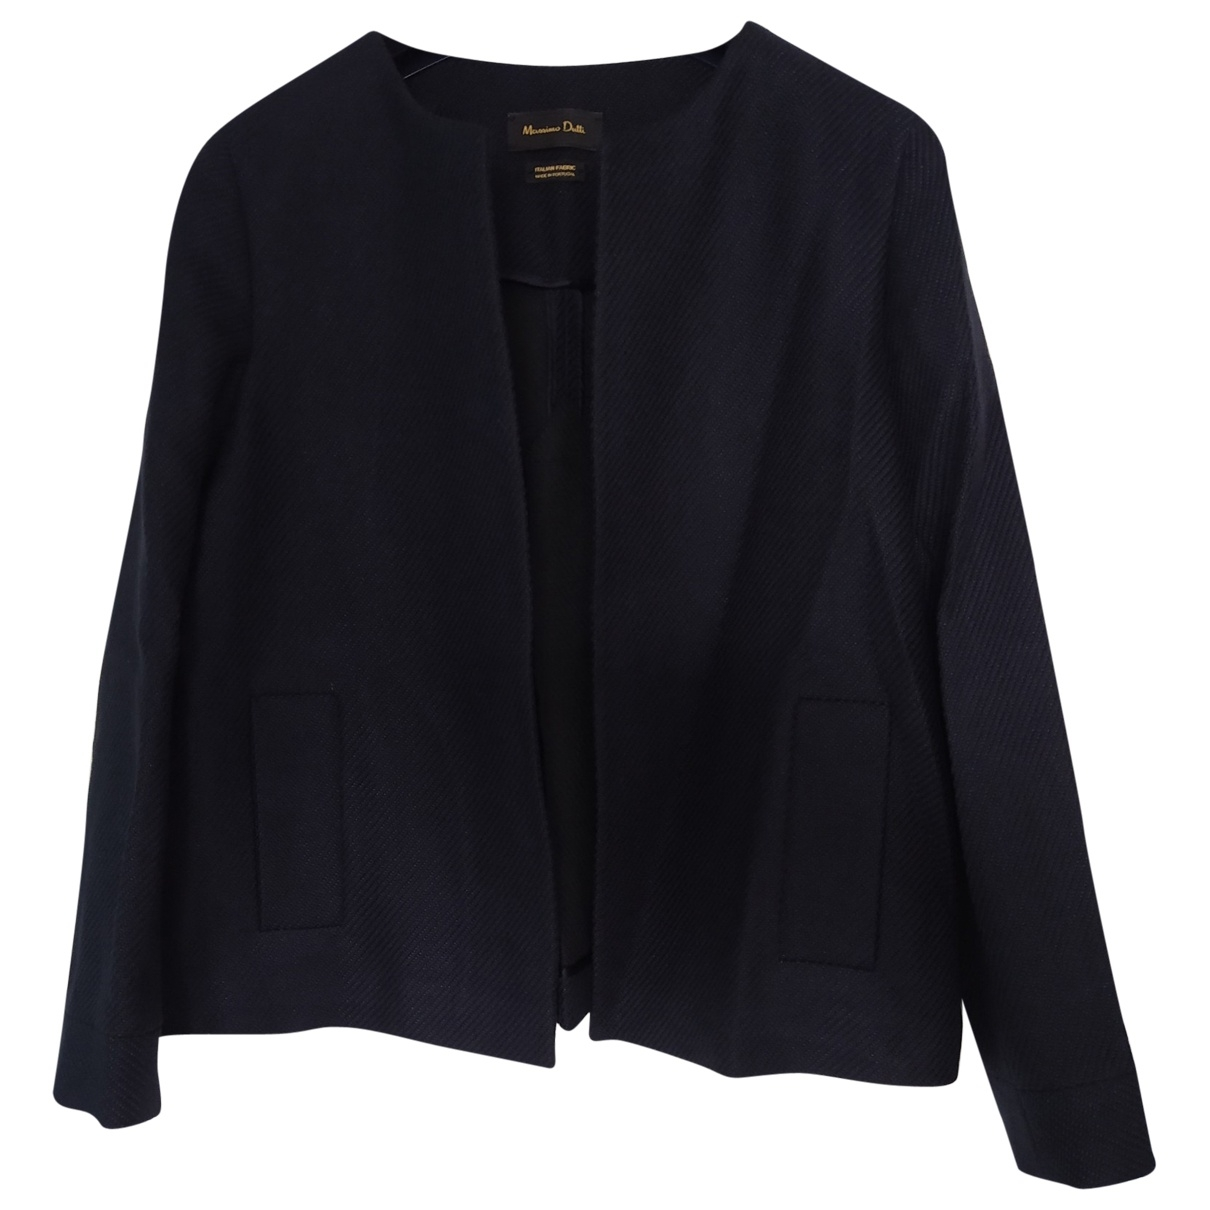 Massimo Dutti \N Navy jacket for Women 40 FR